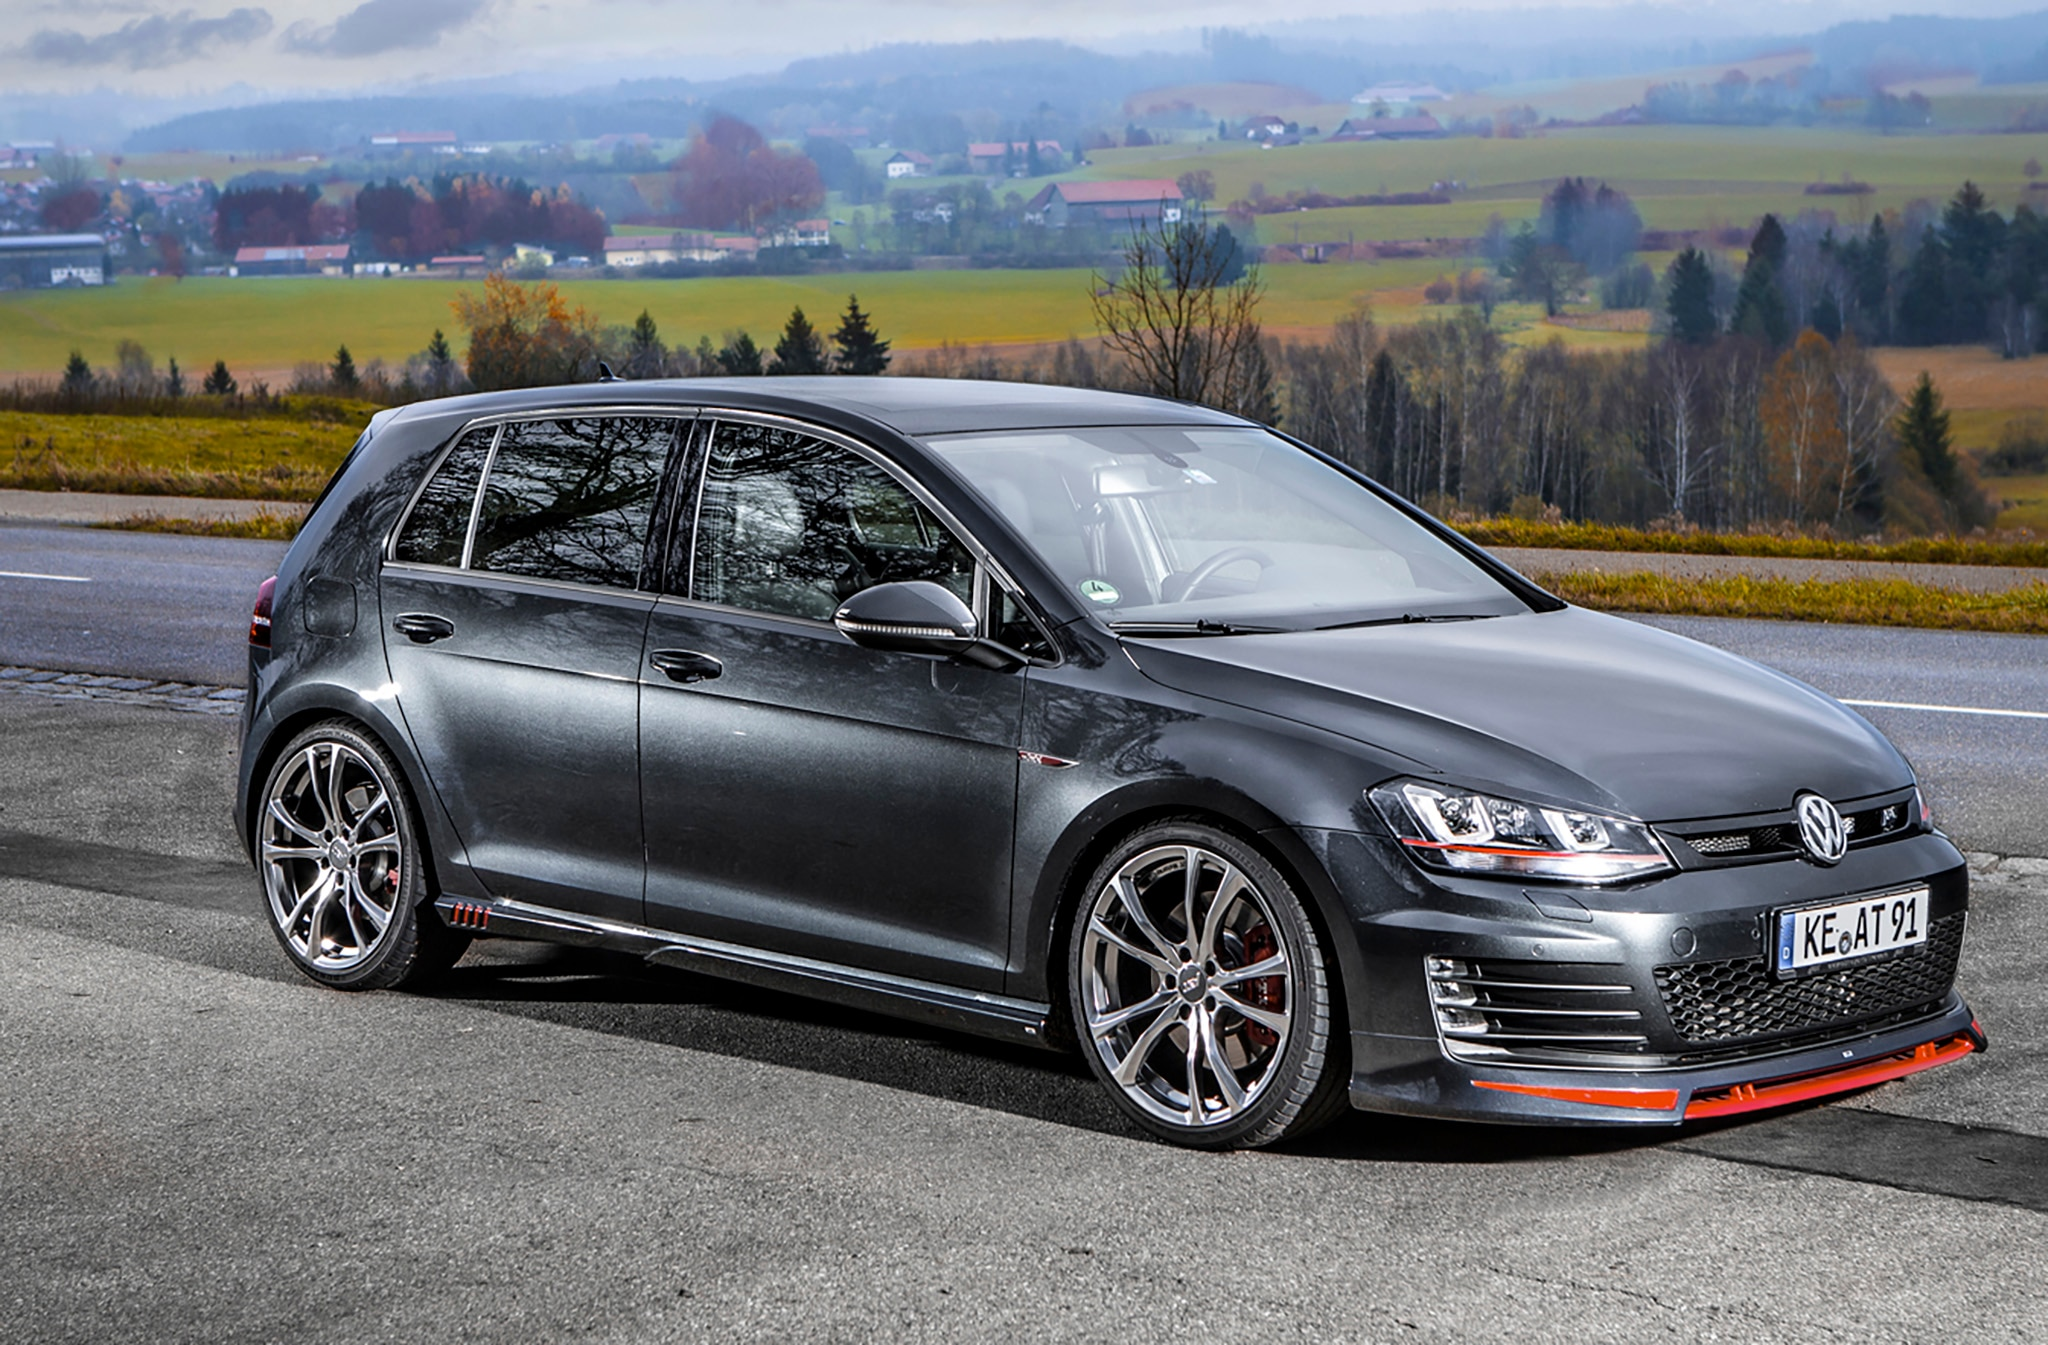 Vw Golf Gti Performance 2017 >> ABT Offers Powertrain and Visual Upgrades for the 2017 Volkswagen GTI | Automobile Magazine